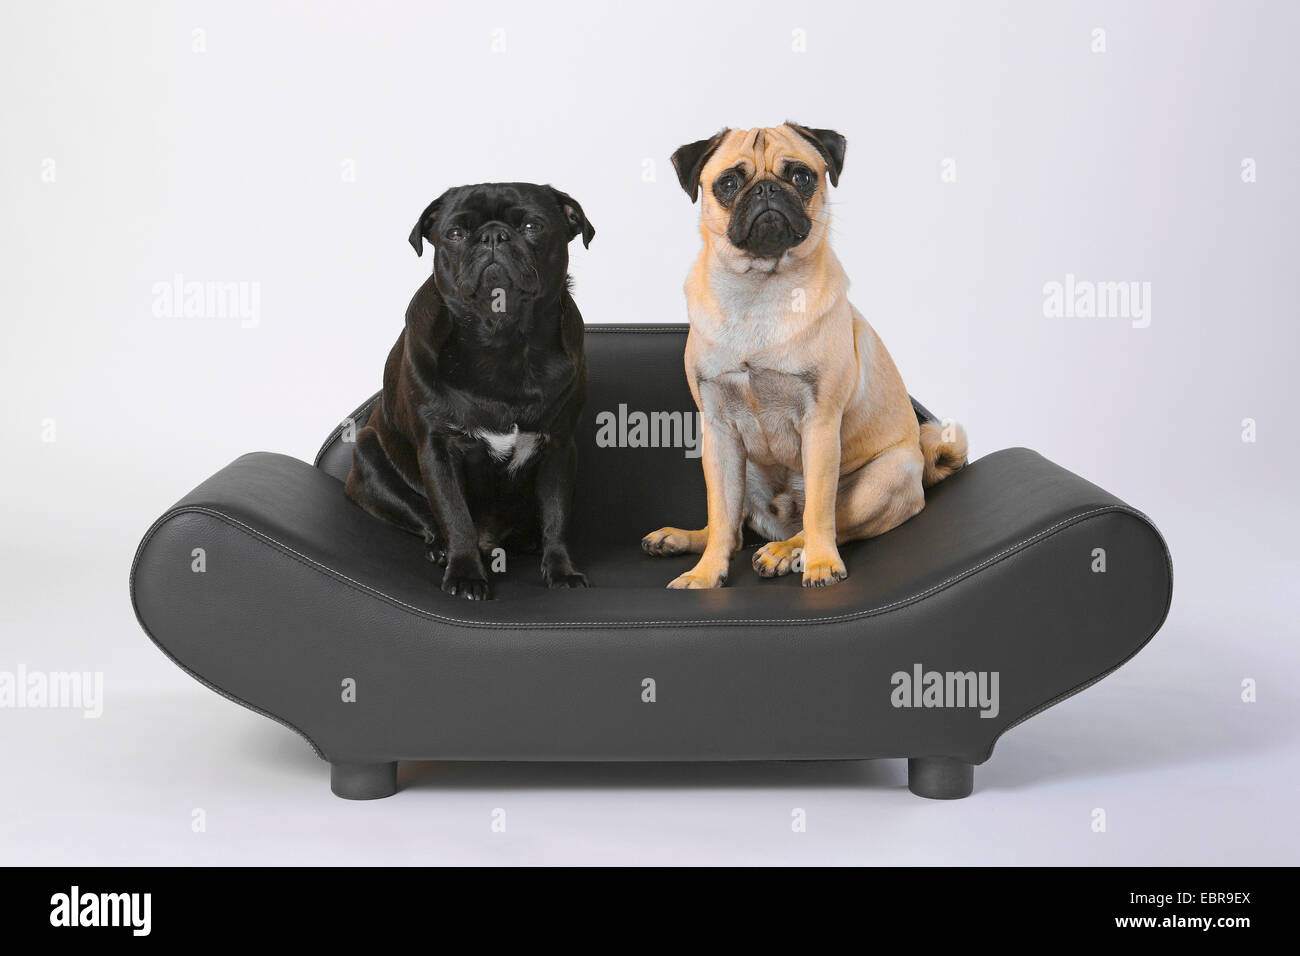 Pug (Canis lupus f. familiaris), two pugs sitting side by side on a noble dog sofa Stock Photo